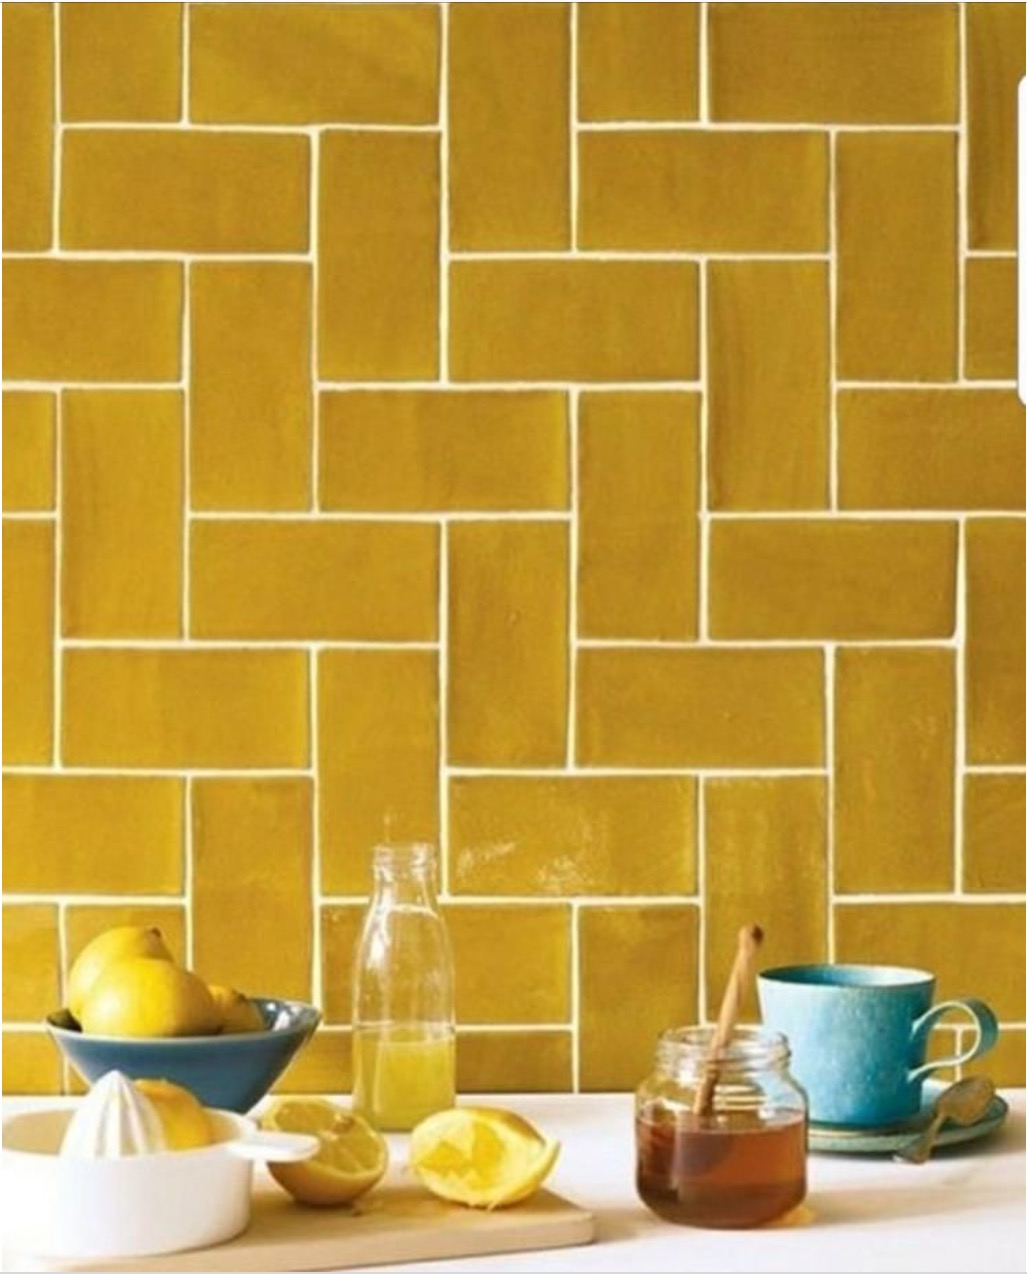 yellow and gold - Bright and shiny yellow can put a smile on anyones face,subway tiles are so versatile!